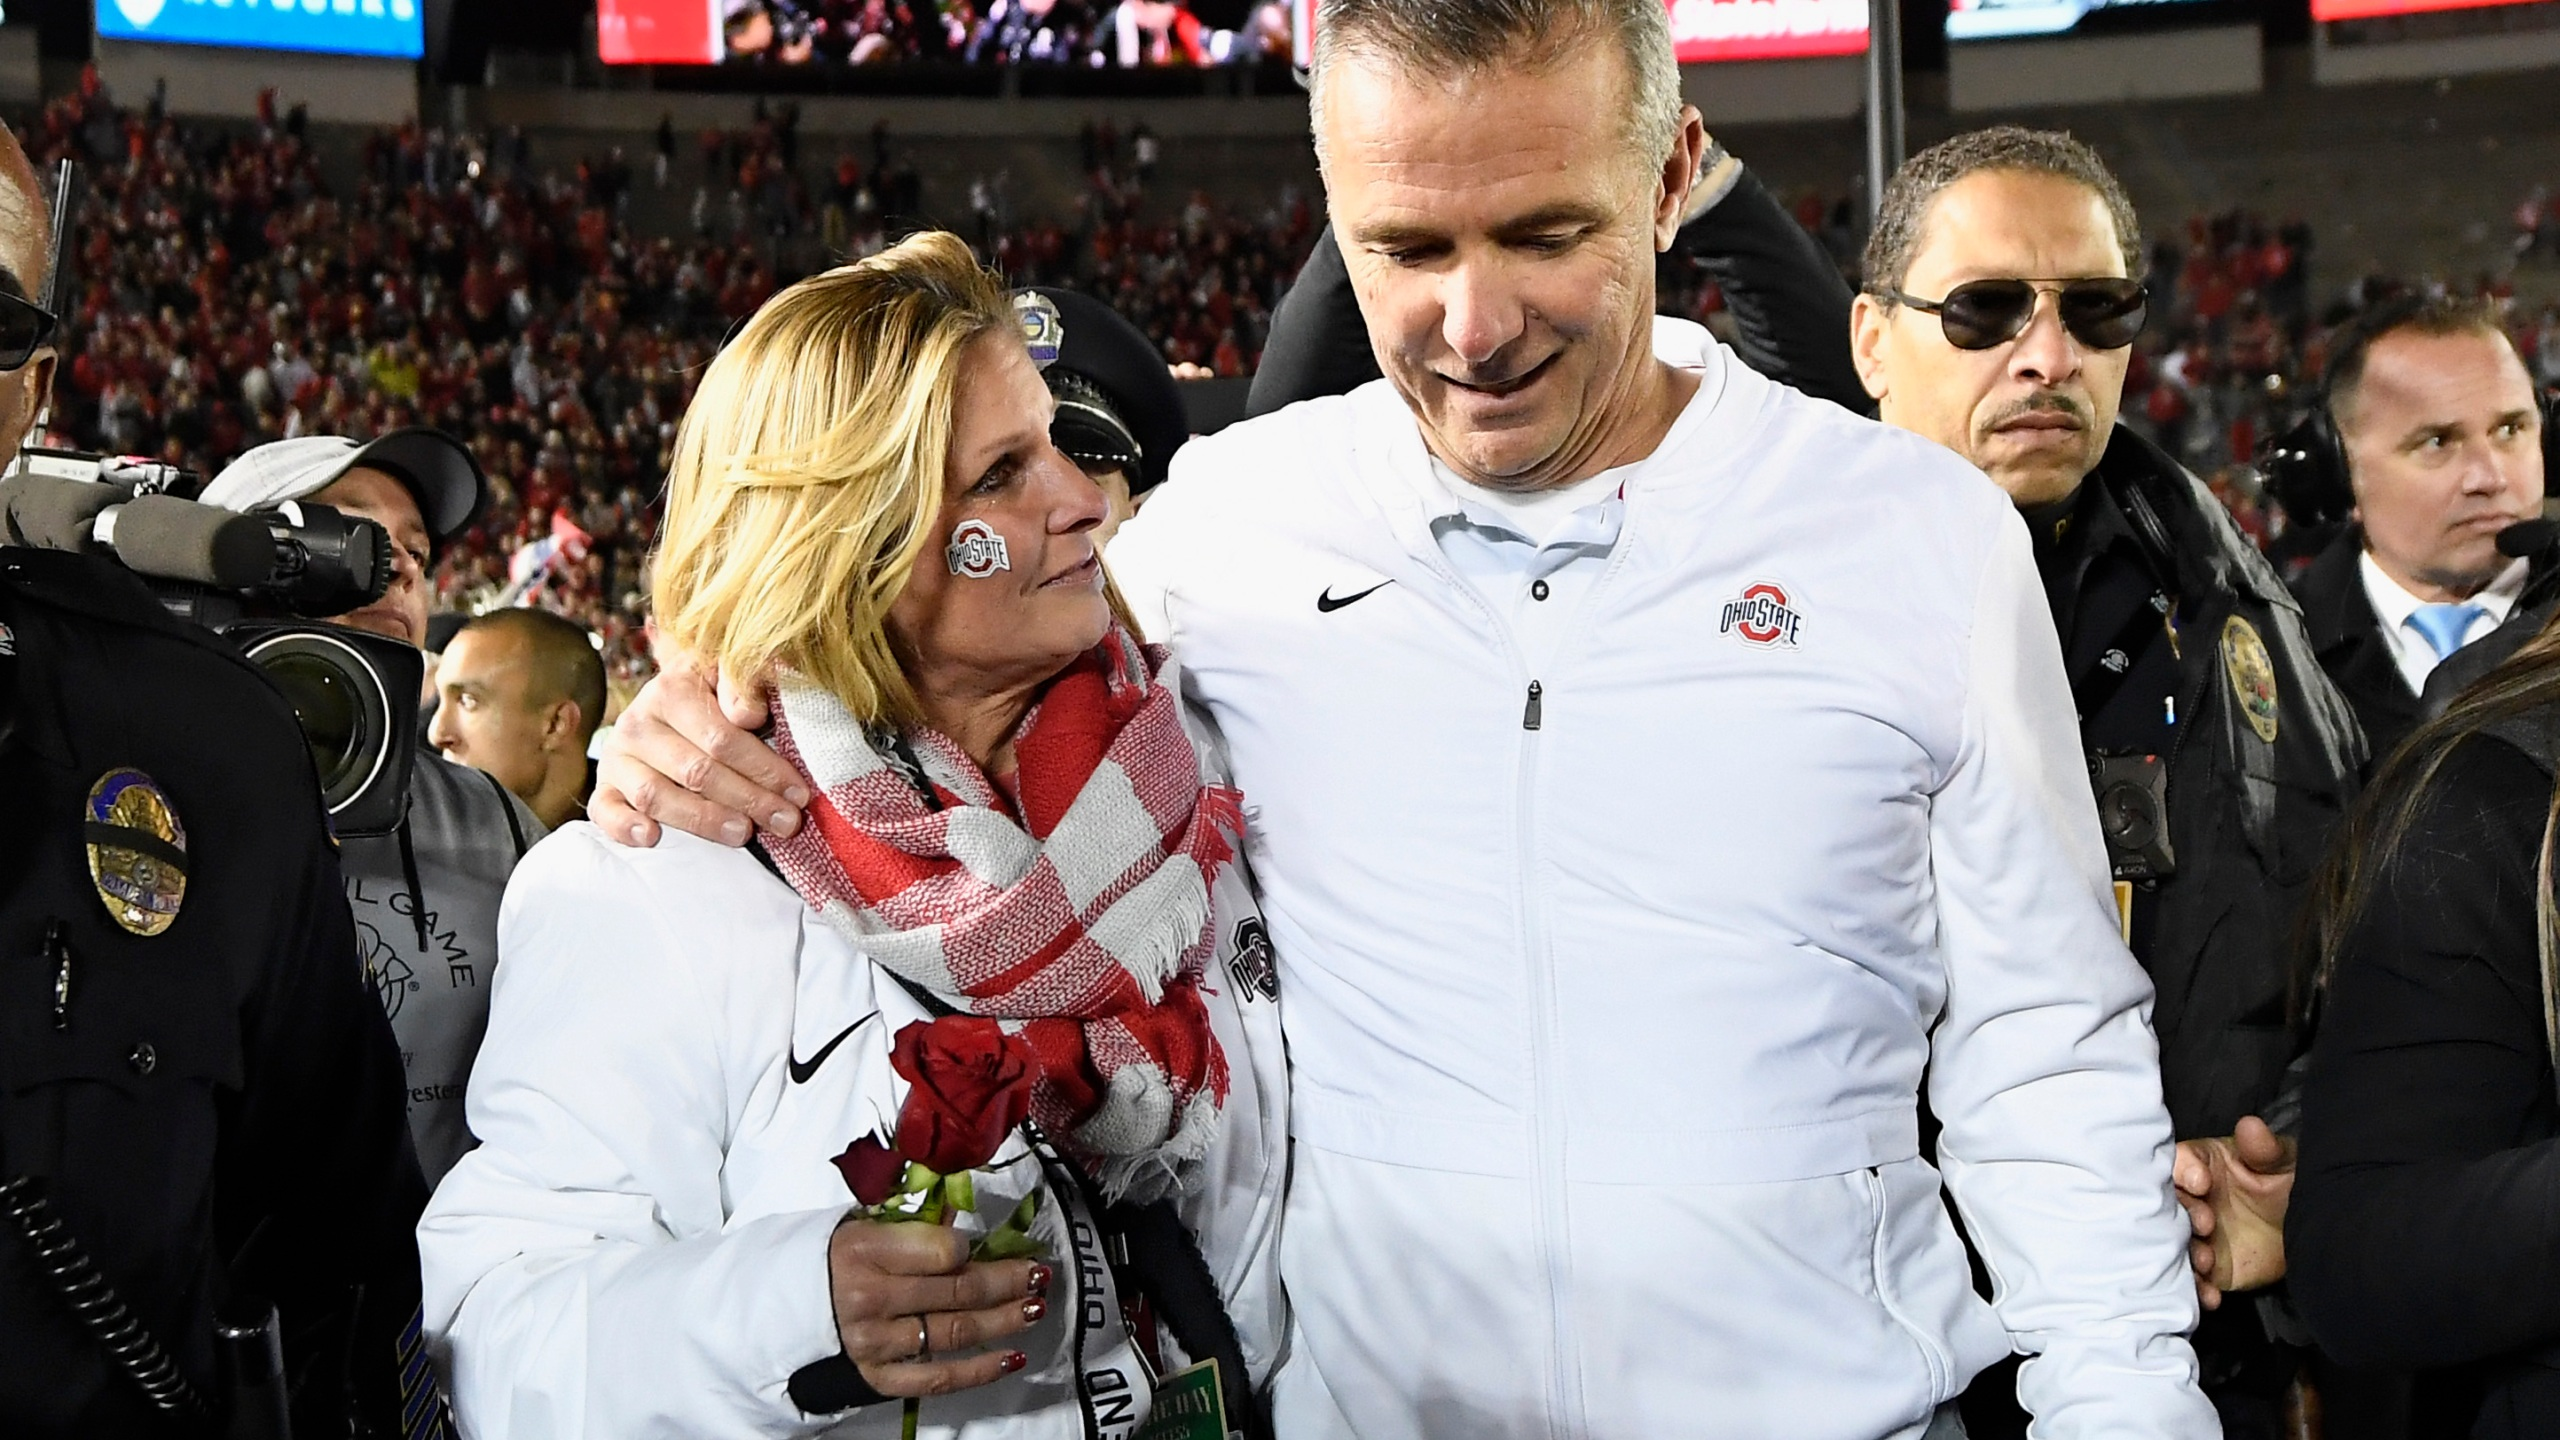 PASADENA, CA - JANUARY 01: Ohio State Buckeyes head coach Urban Meyer and wife Shelley Meyer celebrate after the Ohio State Buckeyes win the Rose Bowl Game presented by Northwestern Mutual at the Rose Bowl on January 1, 2019 in Pasadena, California. (Photo by Kevork Djansezian/Getty Images)